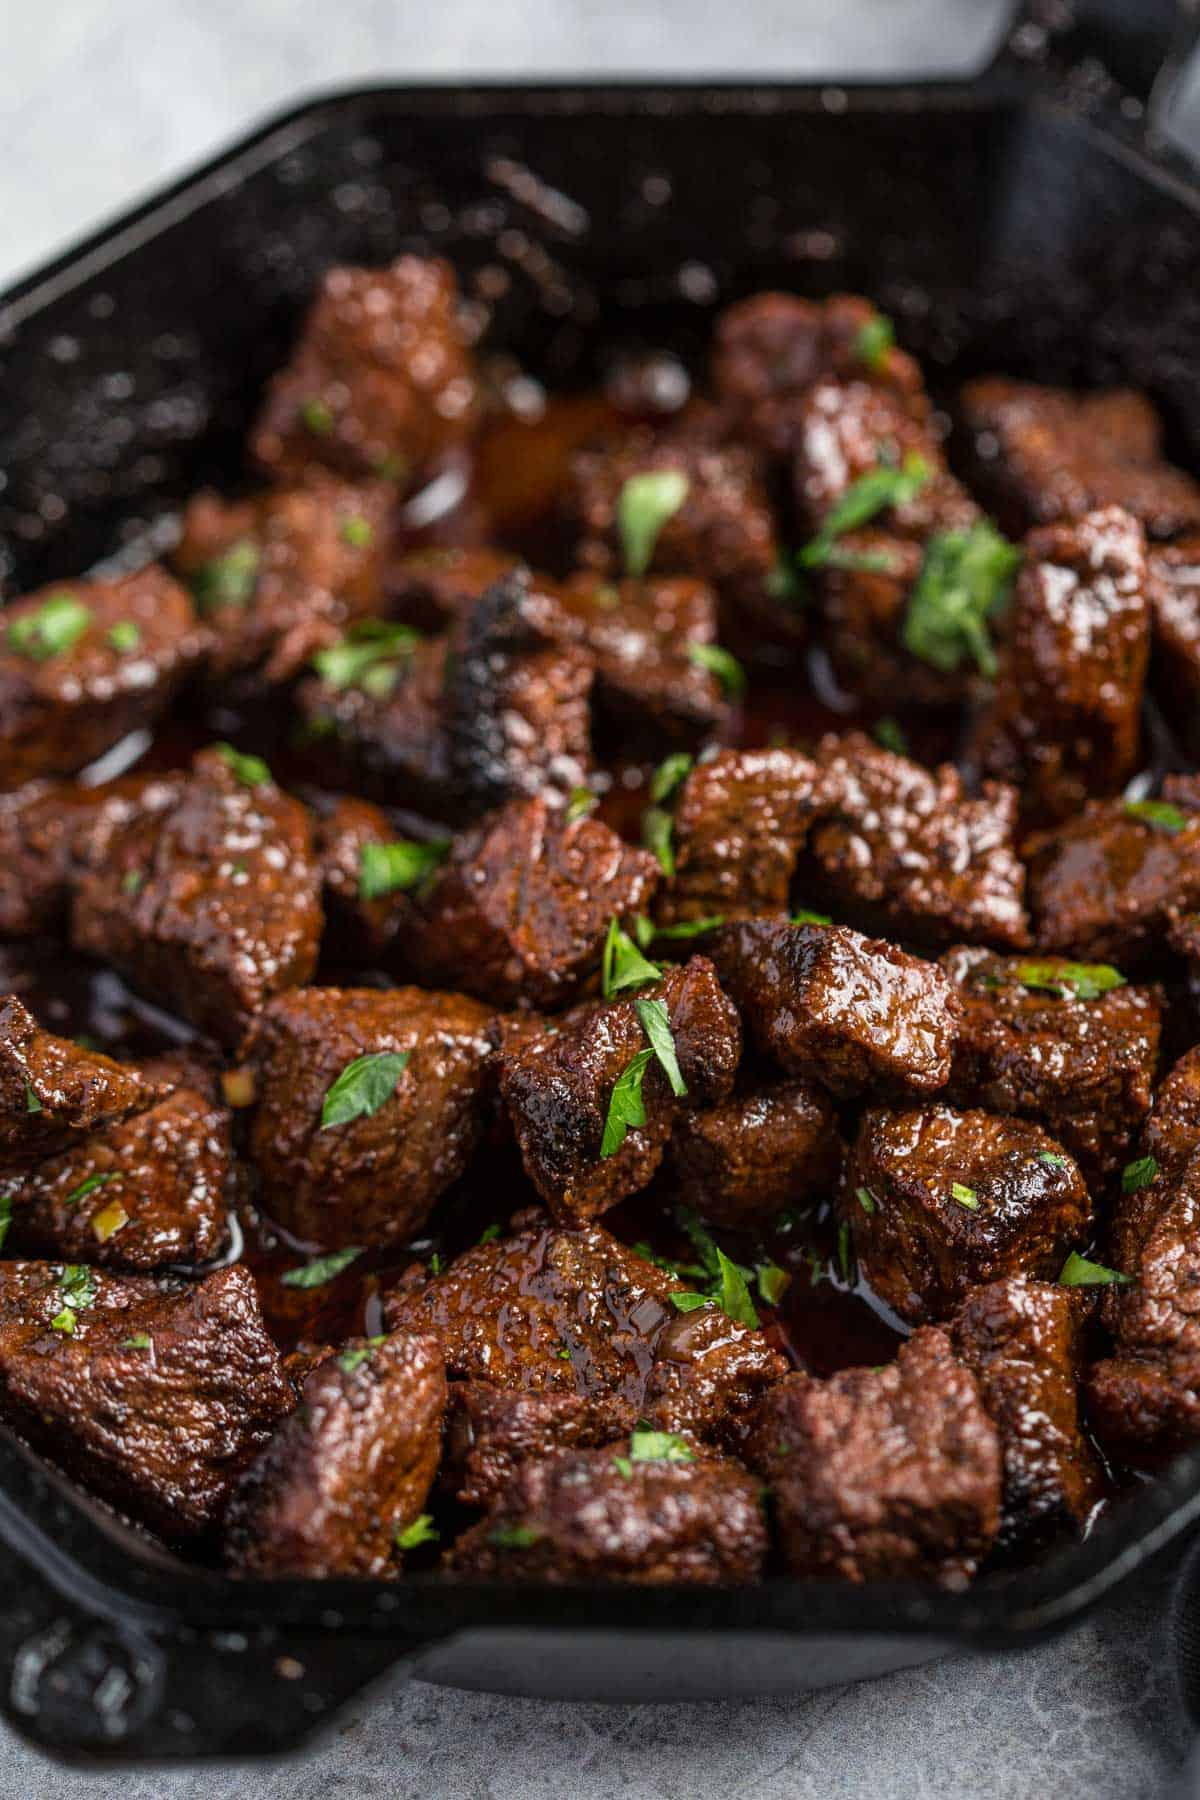 Grilled steak bites in a cast iron pan with a red wine pan sauce